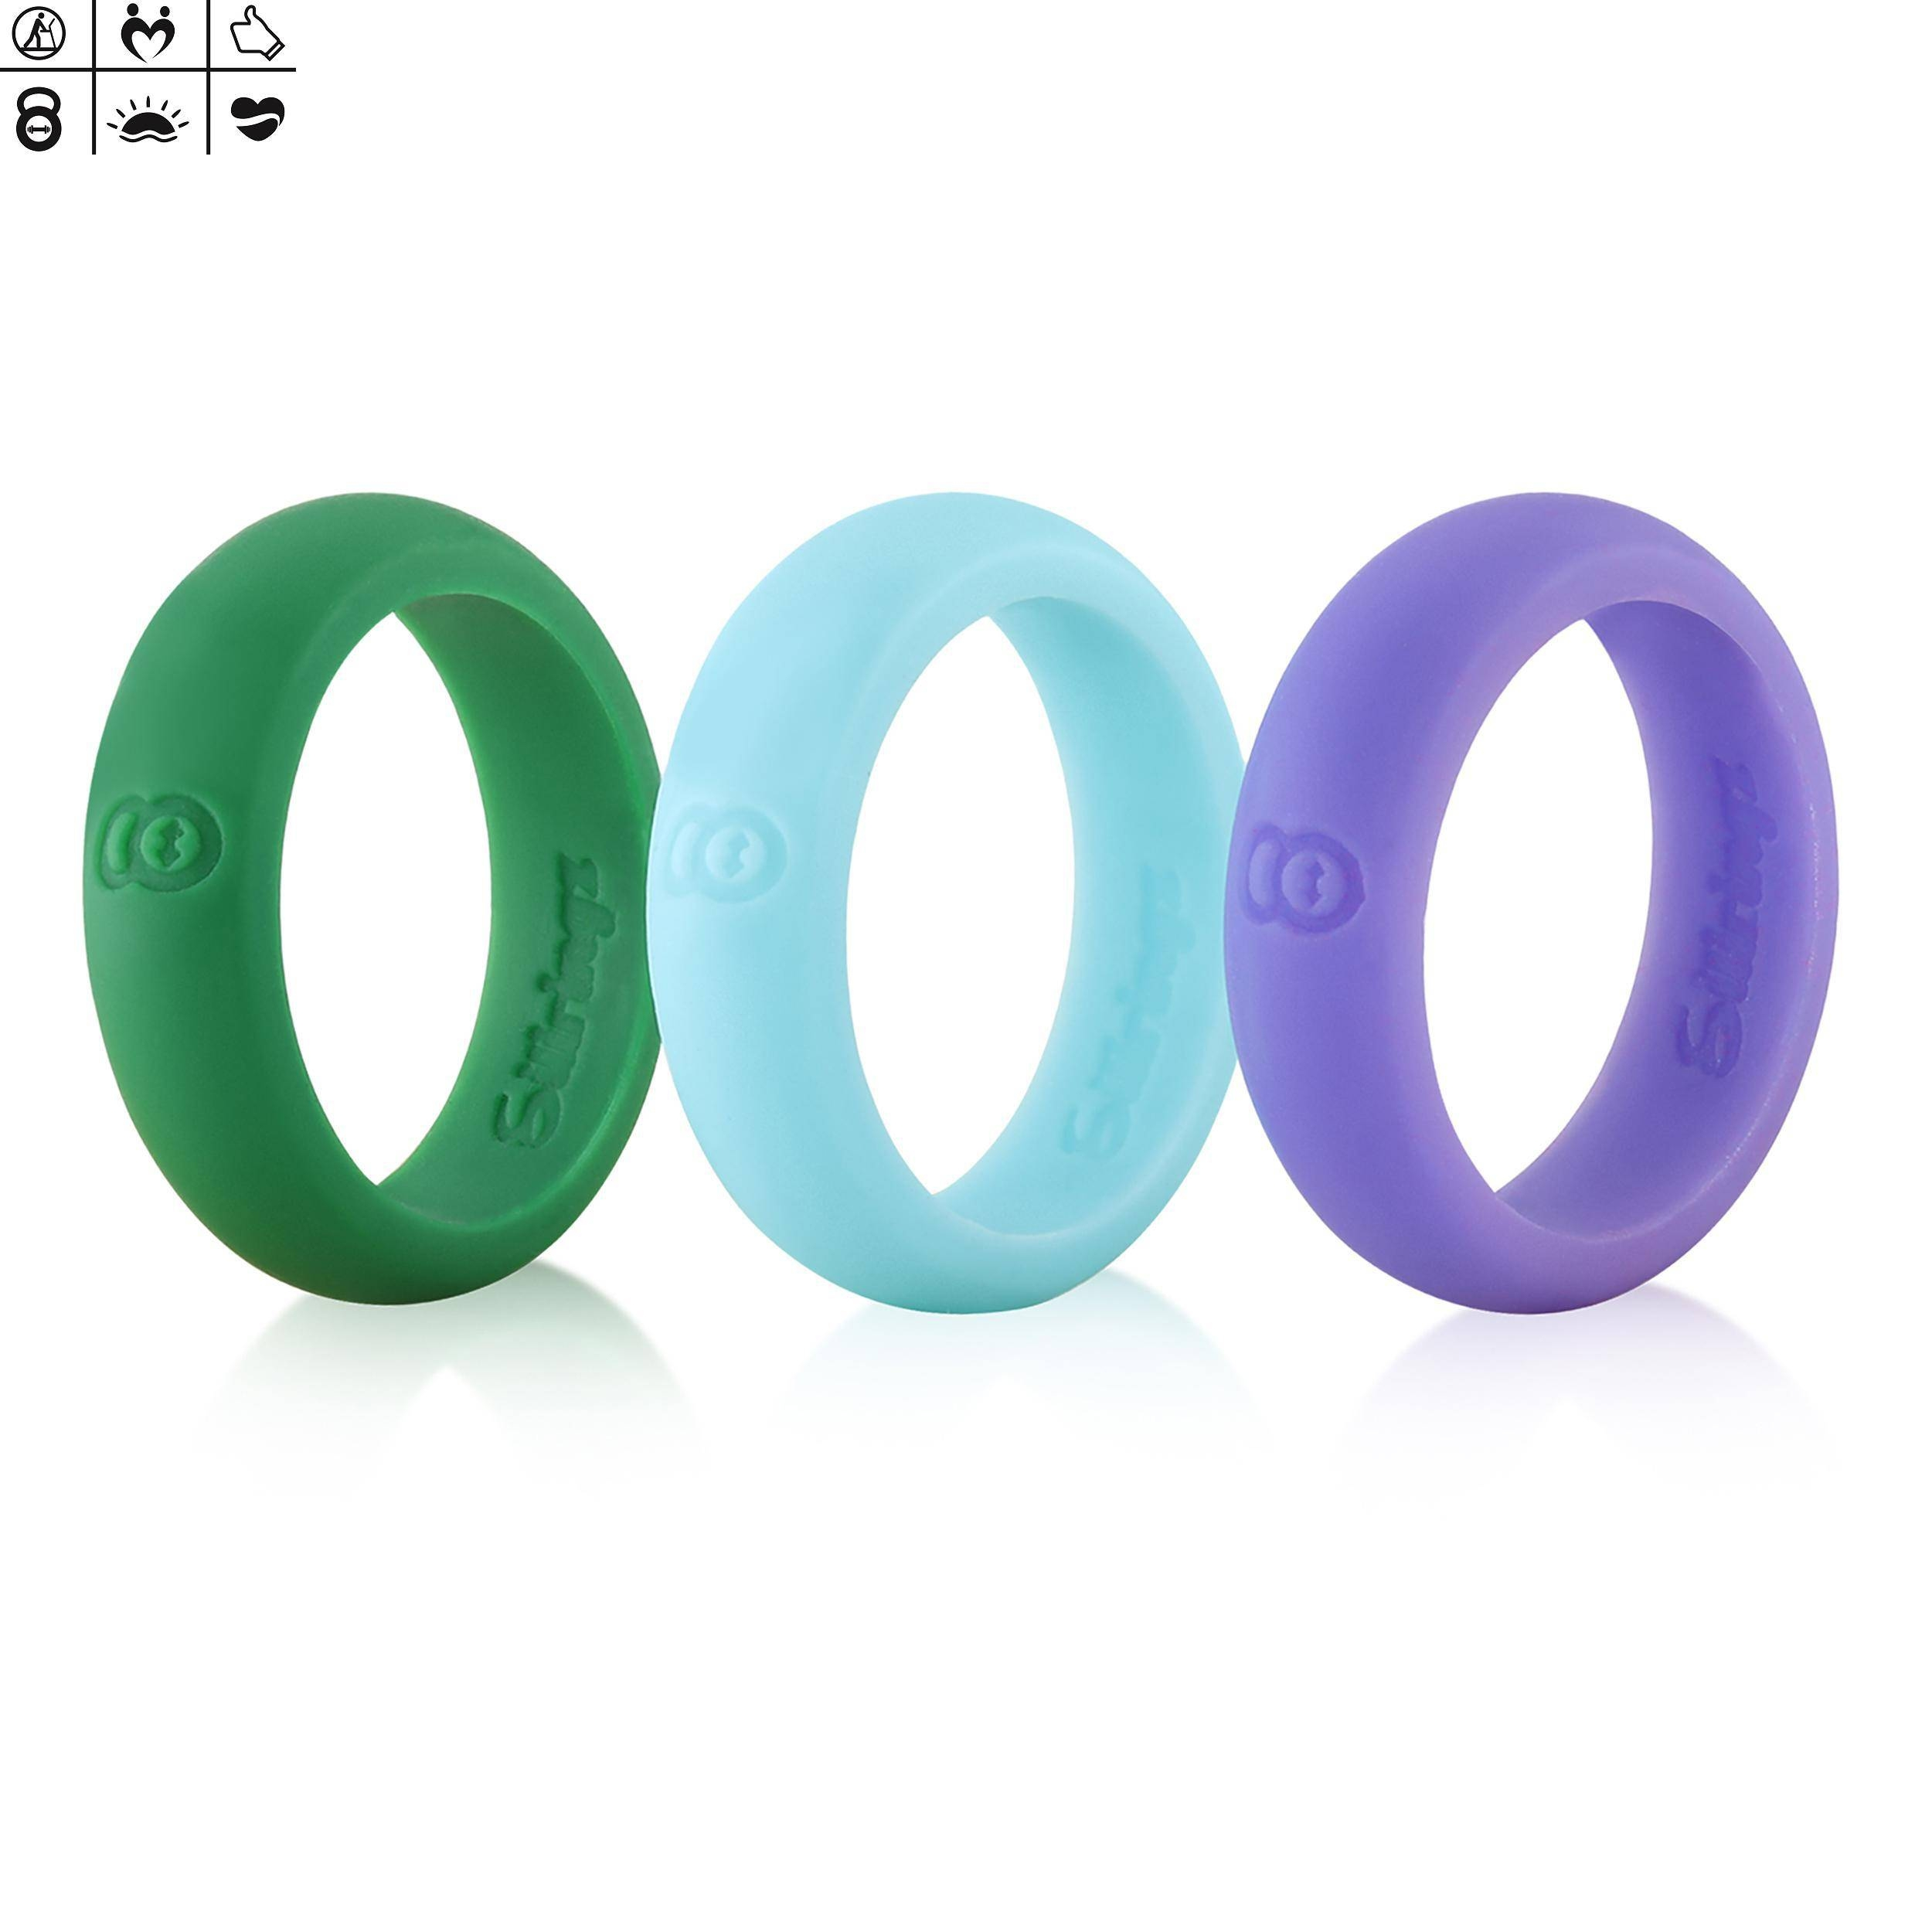 Women's Silicone Wedding Rings | Wedding Bands For Nurses Throughout Wedding Bands For Nurses (View 15 of 15)